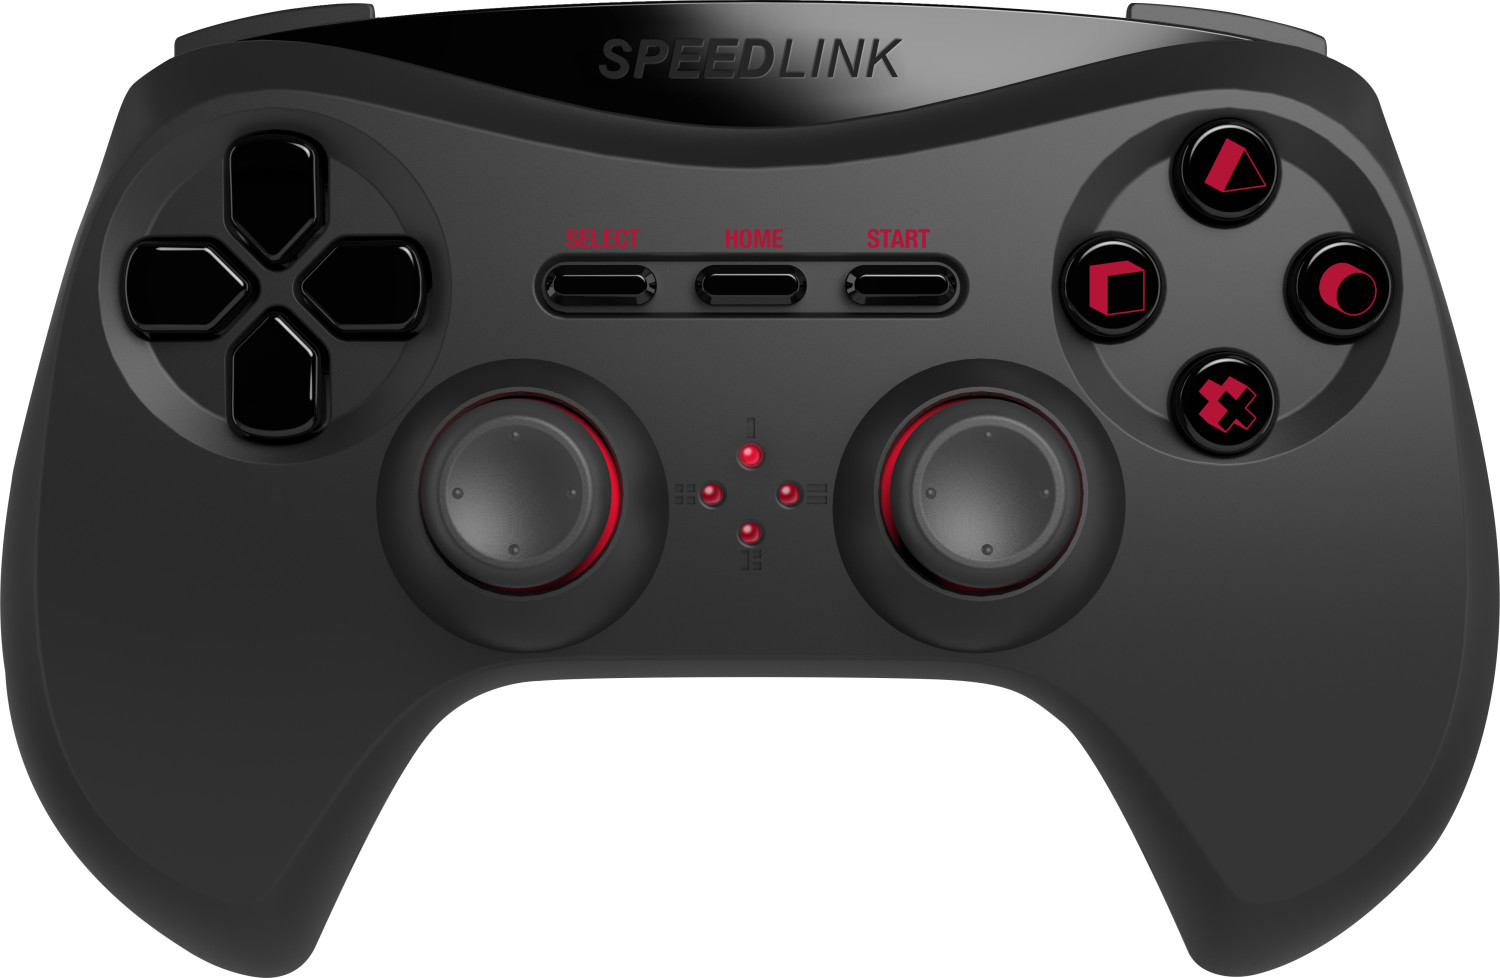 Image of Speedlink PS3 Strike NX Gamepad wireless